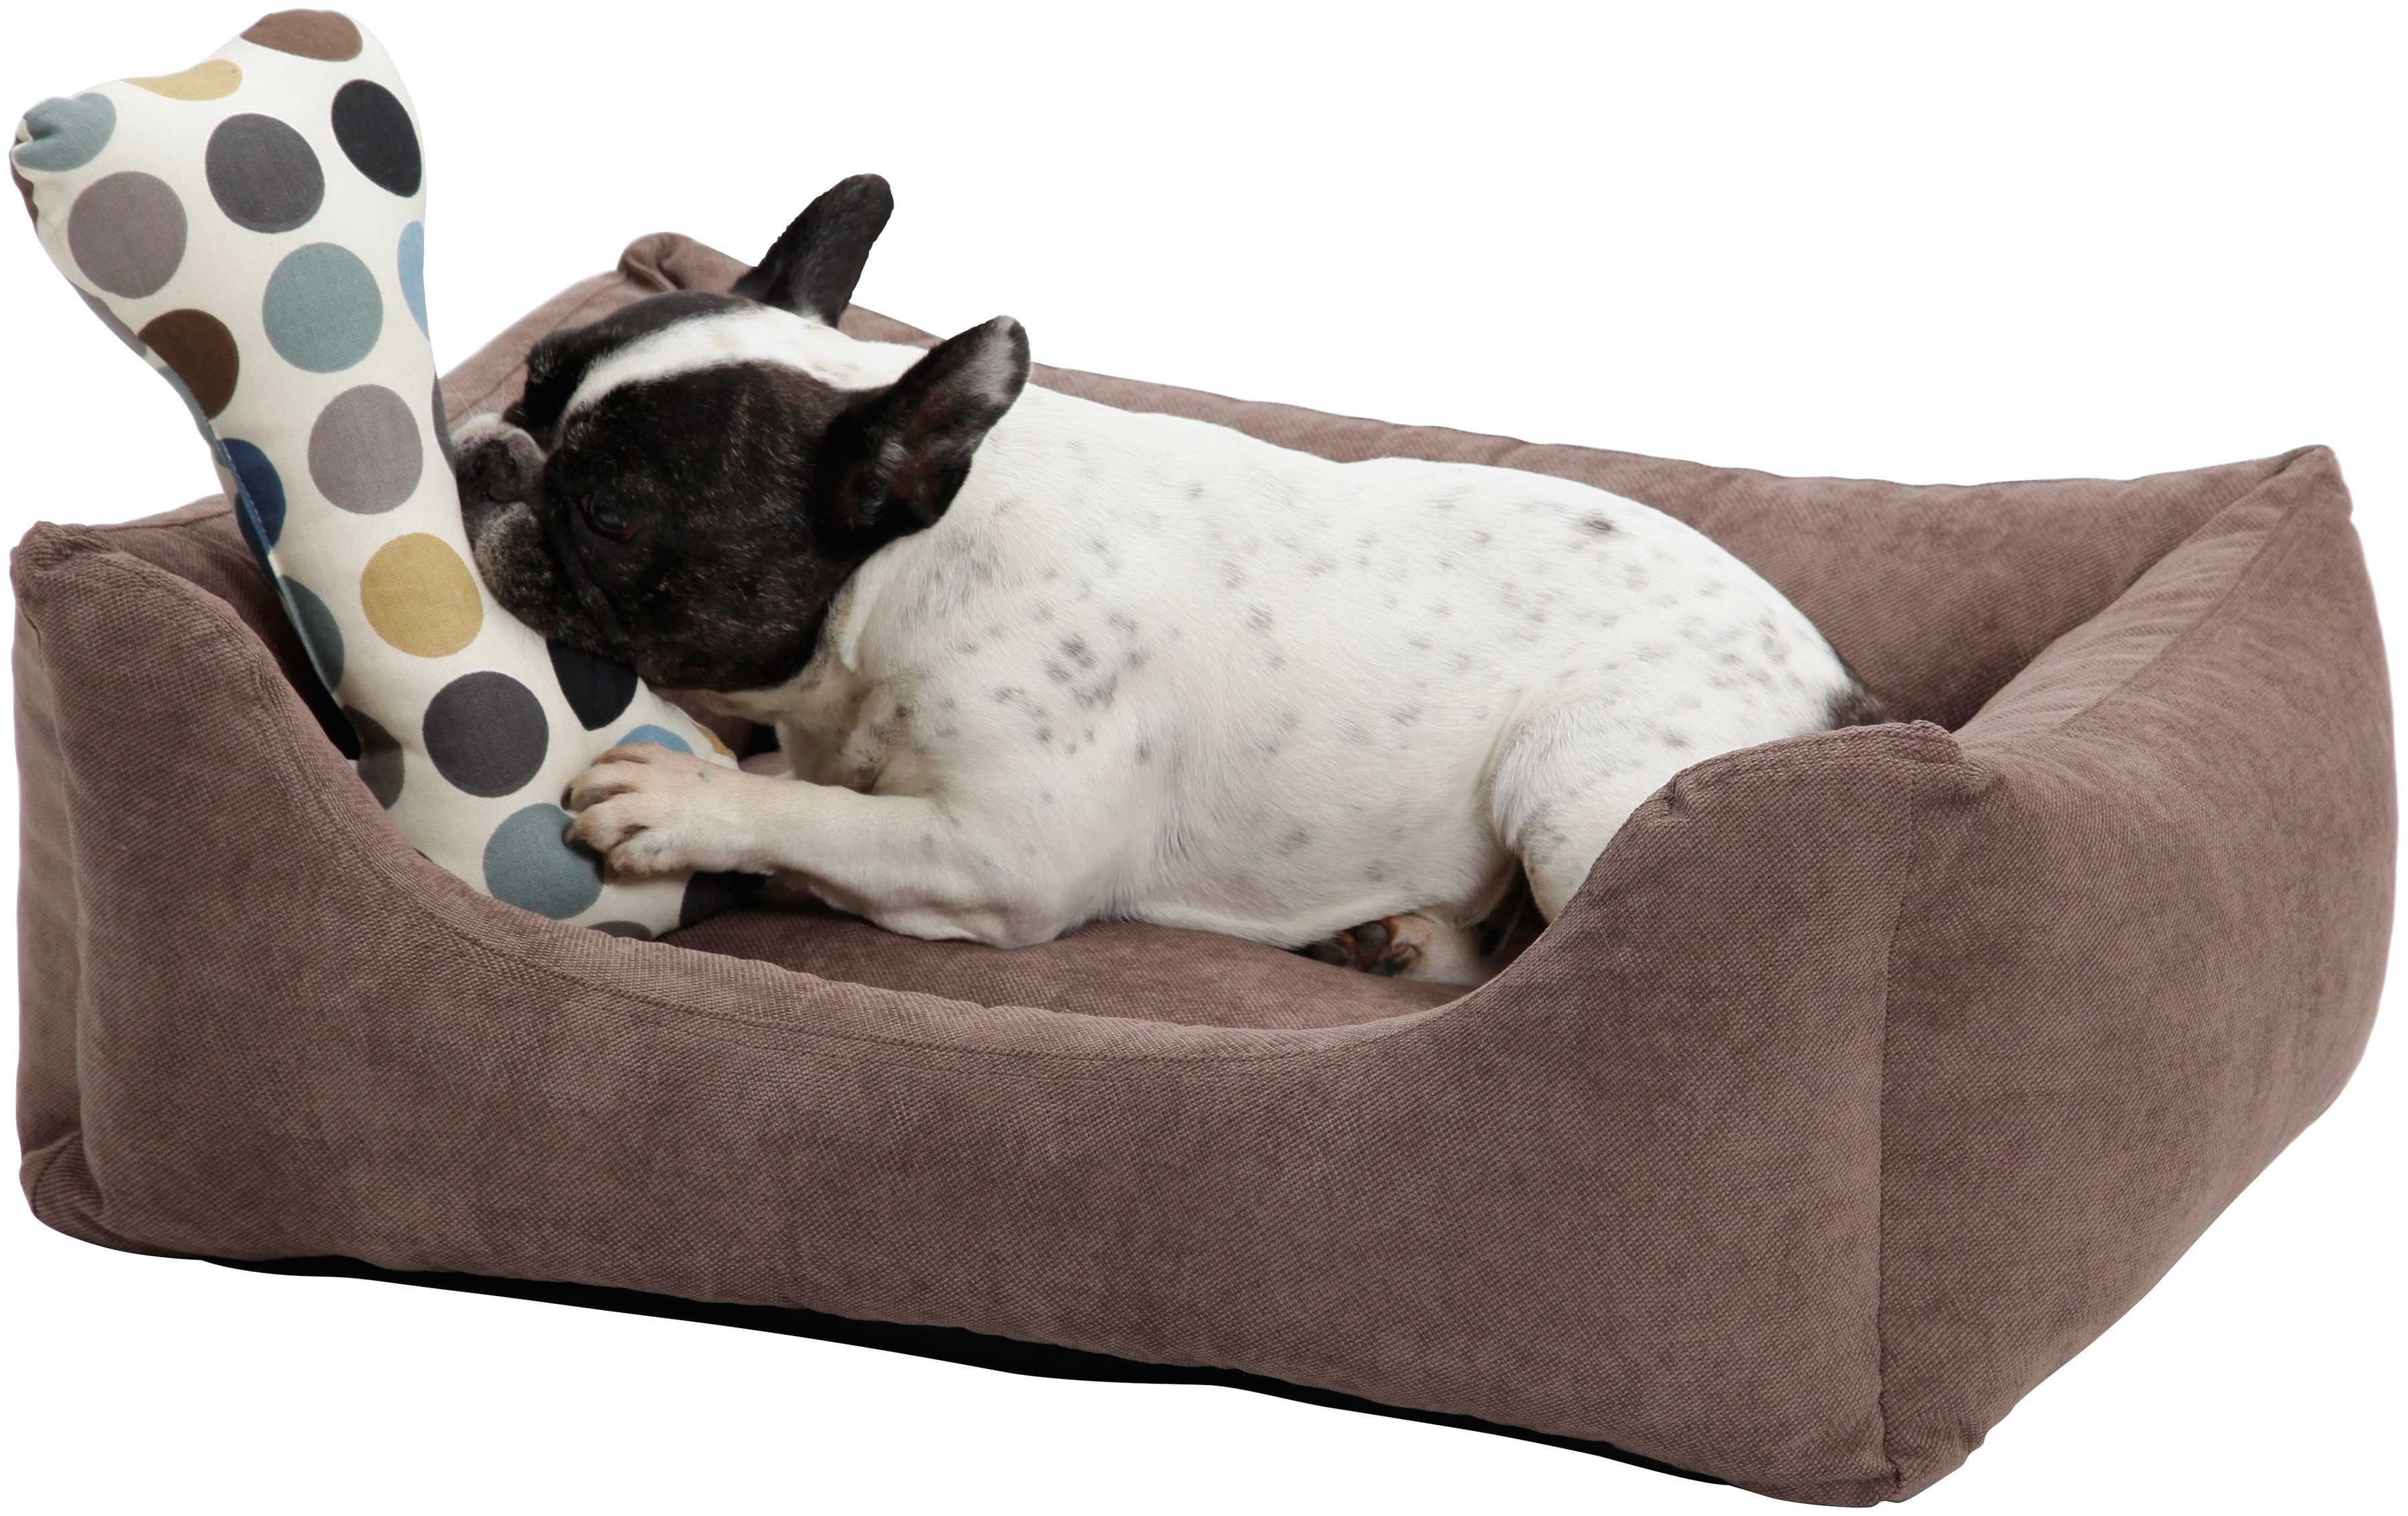 Dogs In The City Hundebett und Katzenbett »Madison«, B/T/H: 80/60/28 cm, Braun